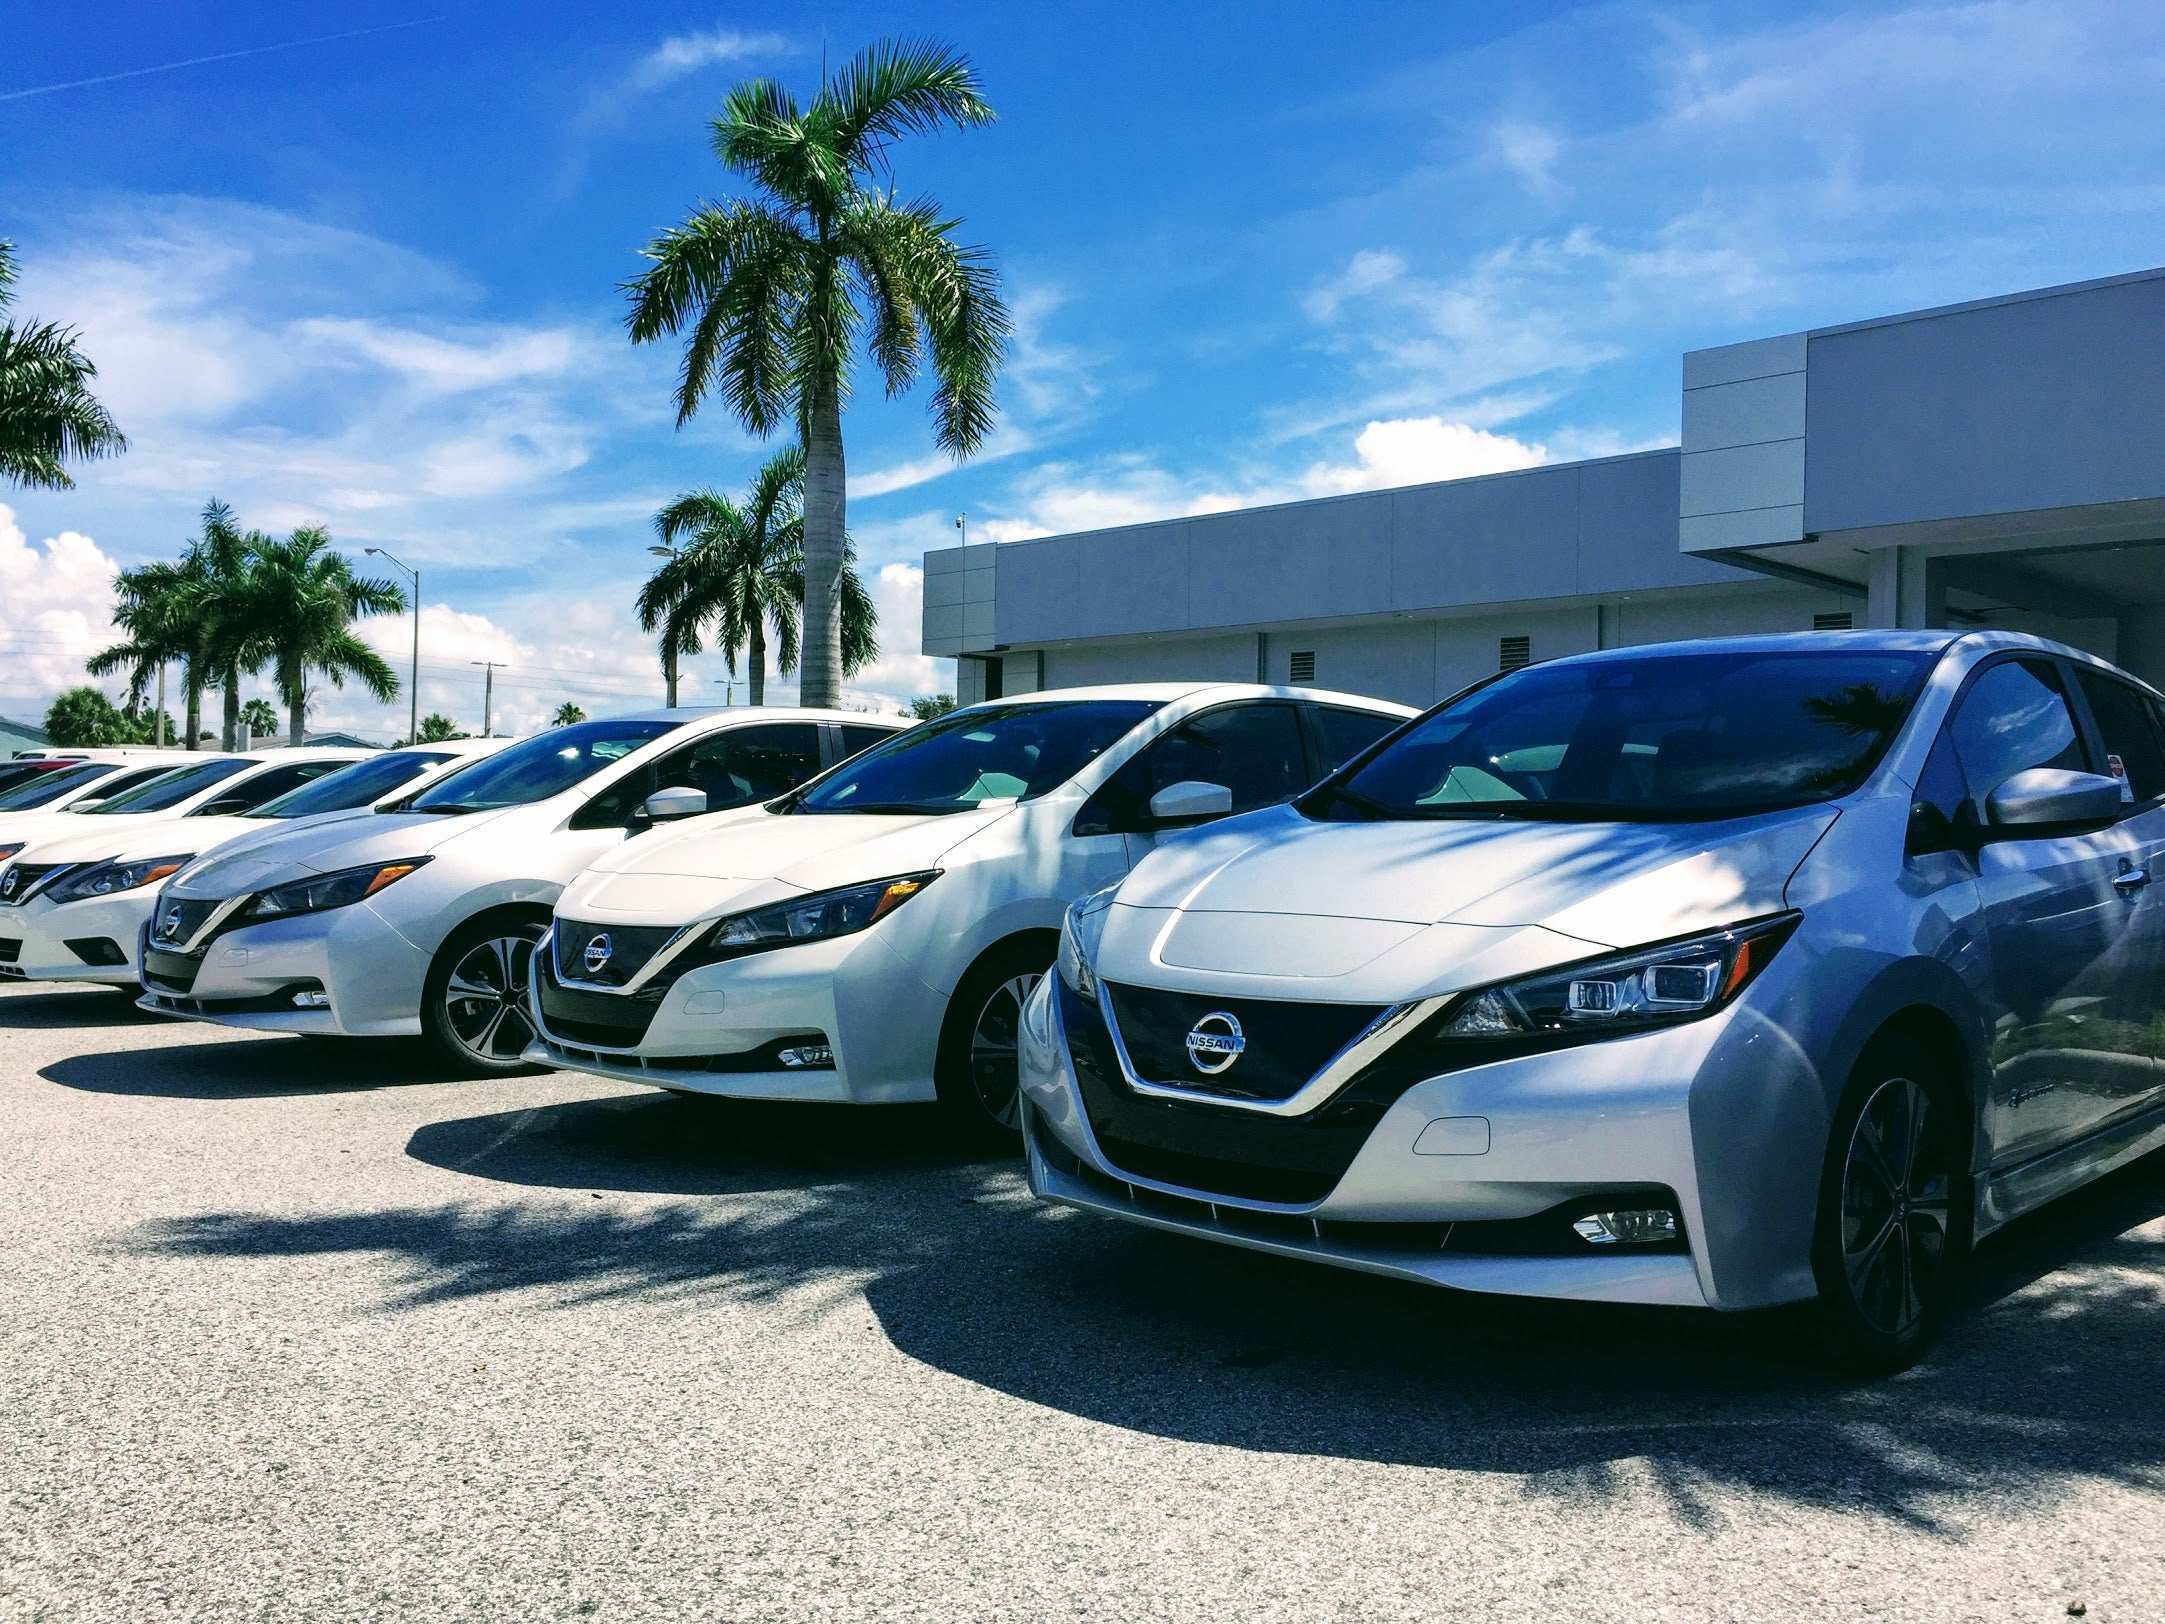 87 A 2019 Nissan Leaf Range Price Design And Review